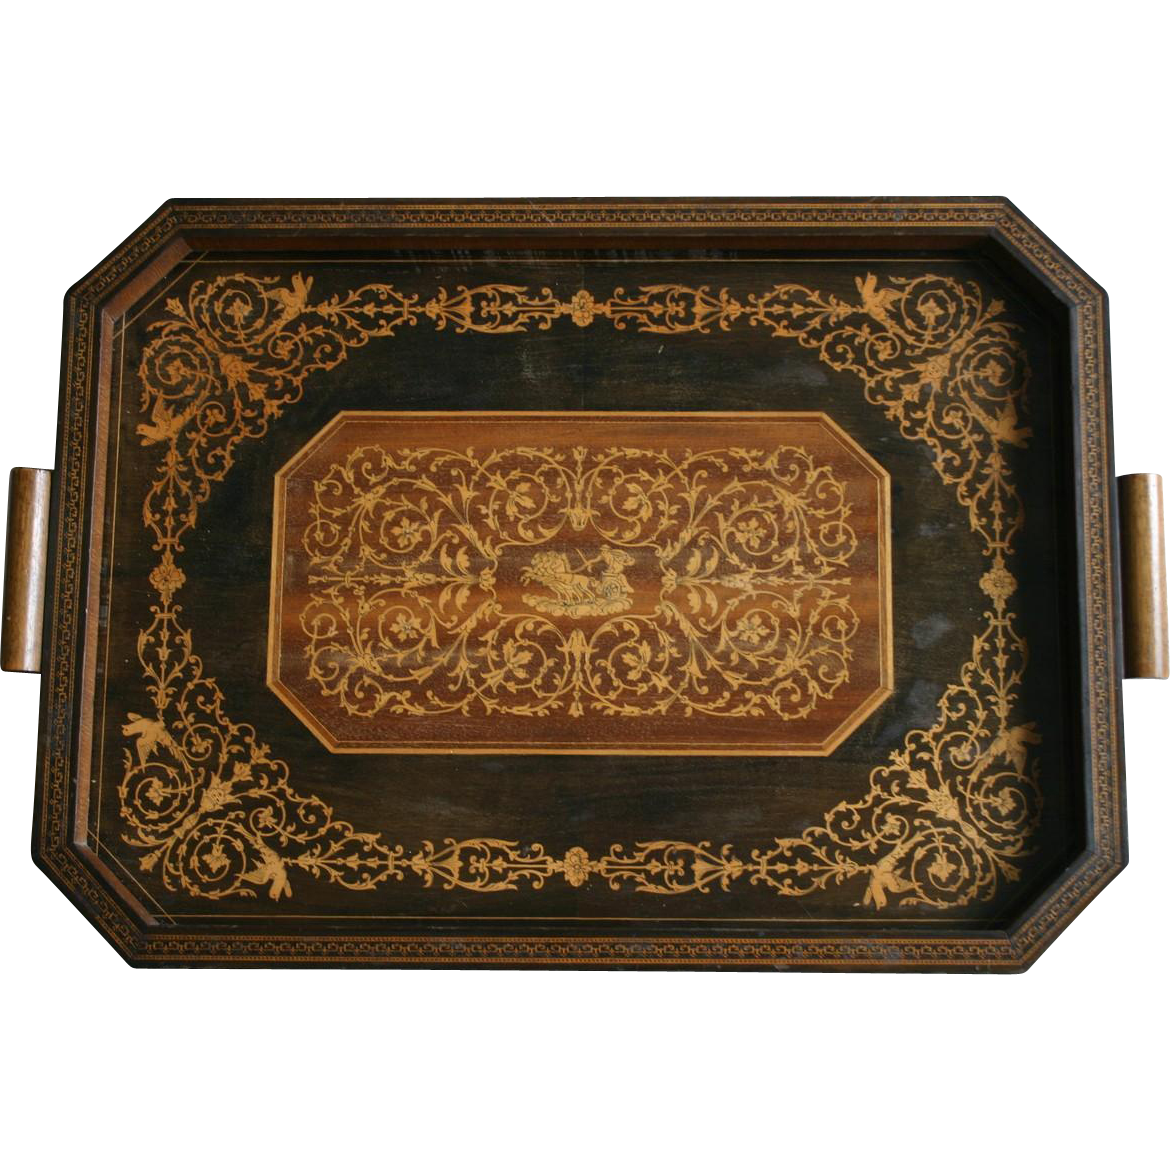 Gorgeous ITALIAN Intarsia Marquetry Tray with Florentine Design Inlaid Wood